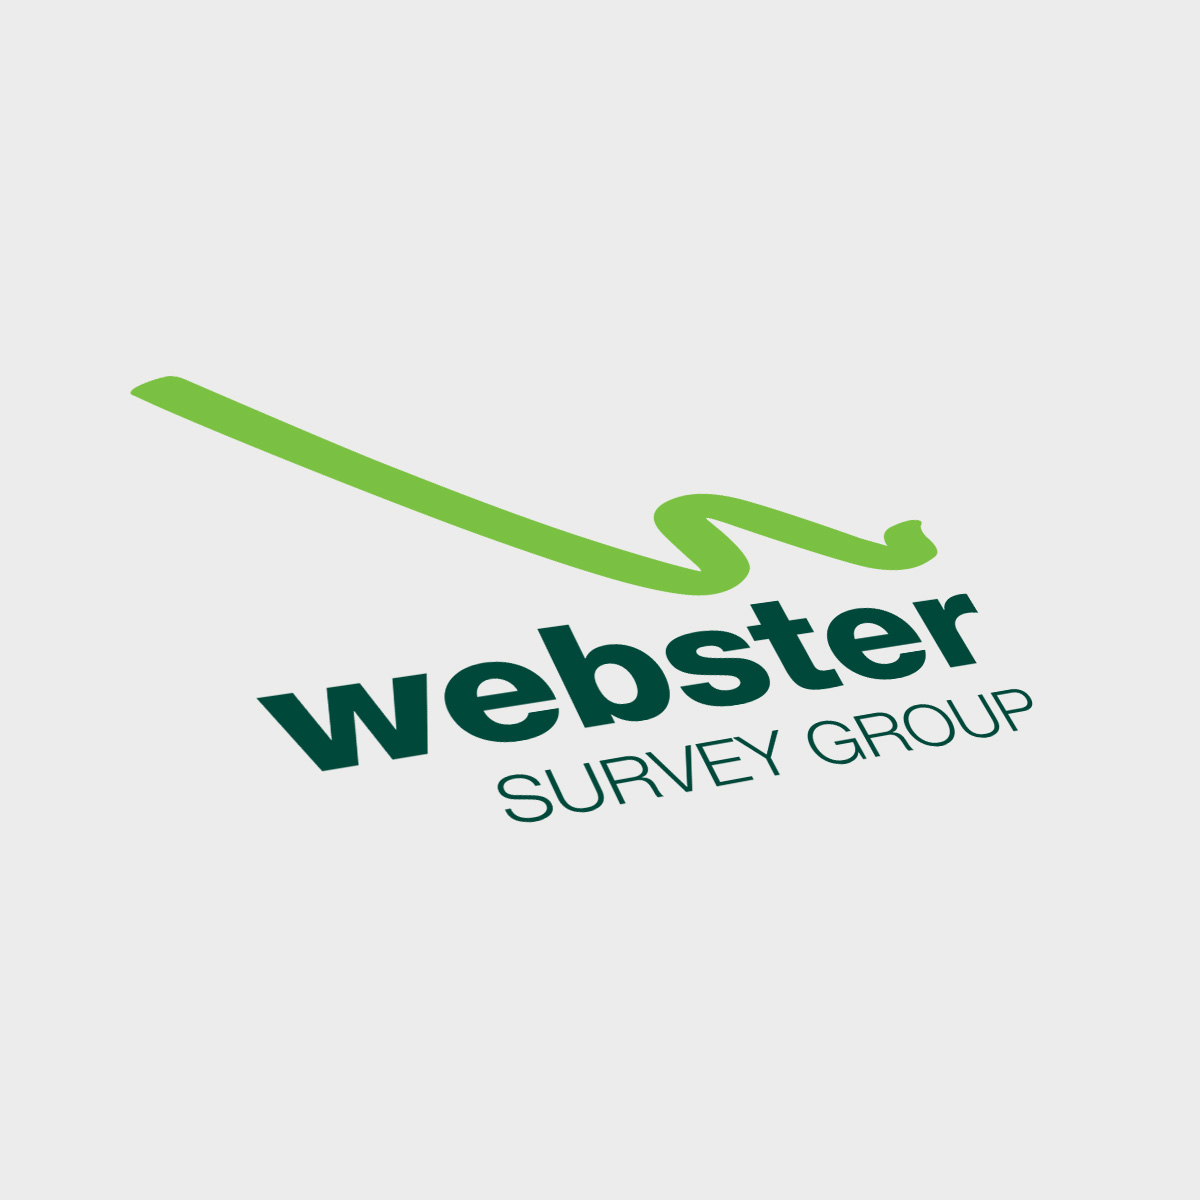 Webster Survey Group